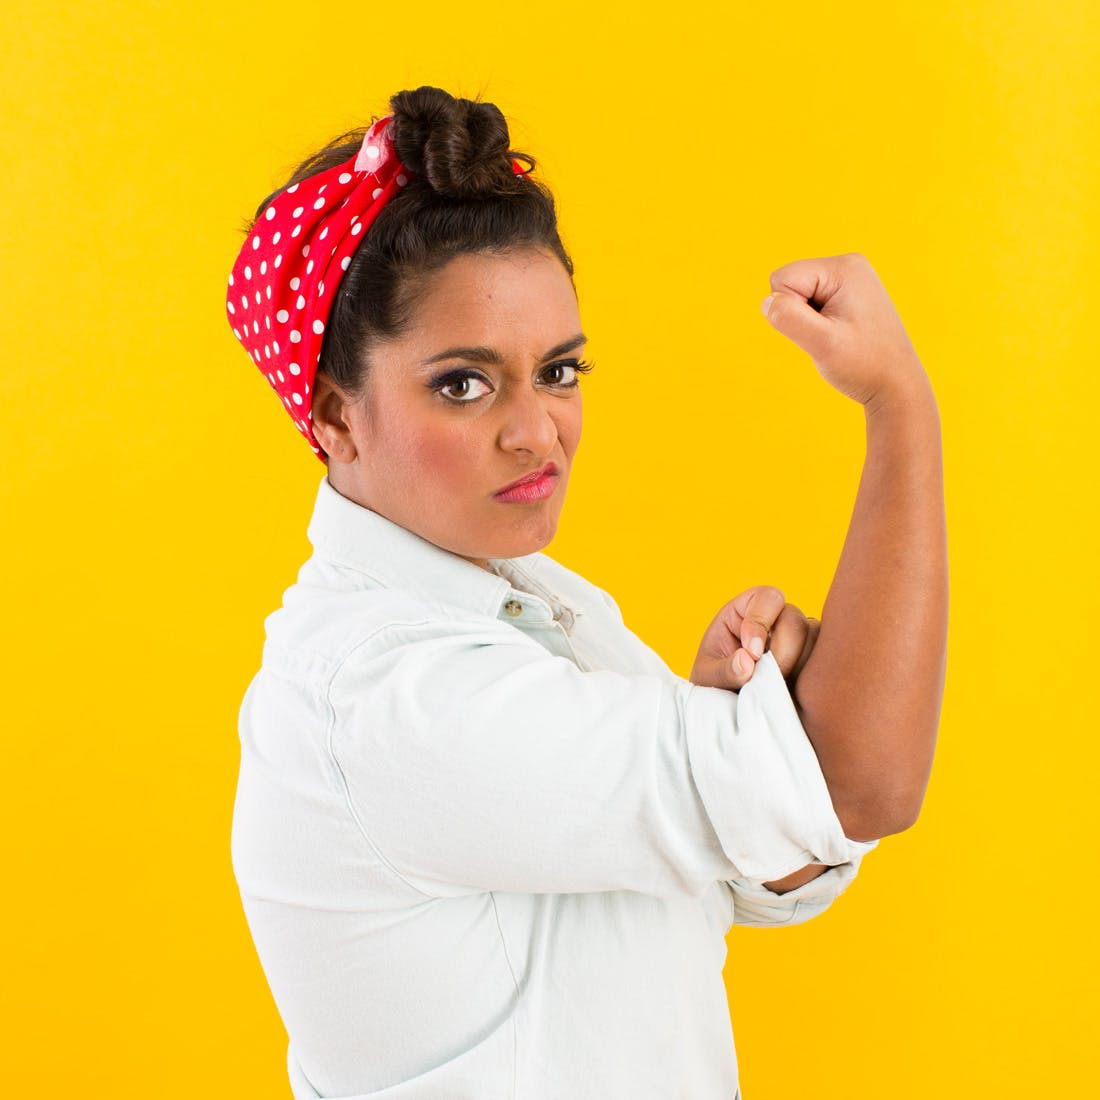 rosie the riveter halloween costume for teen girls